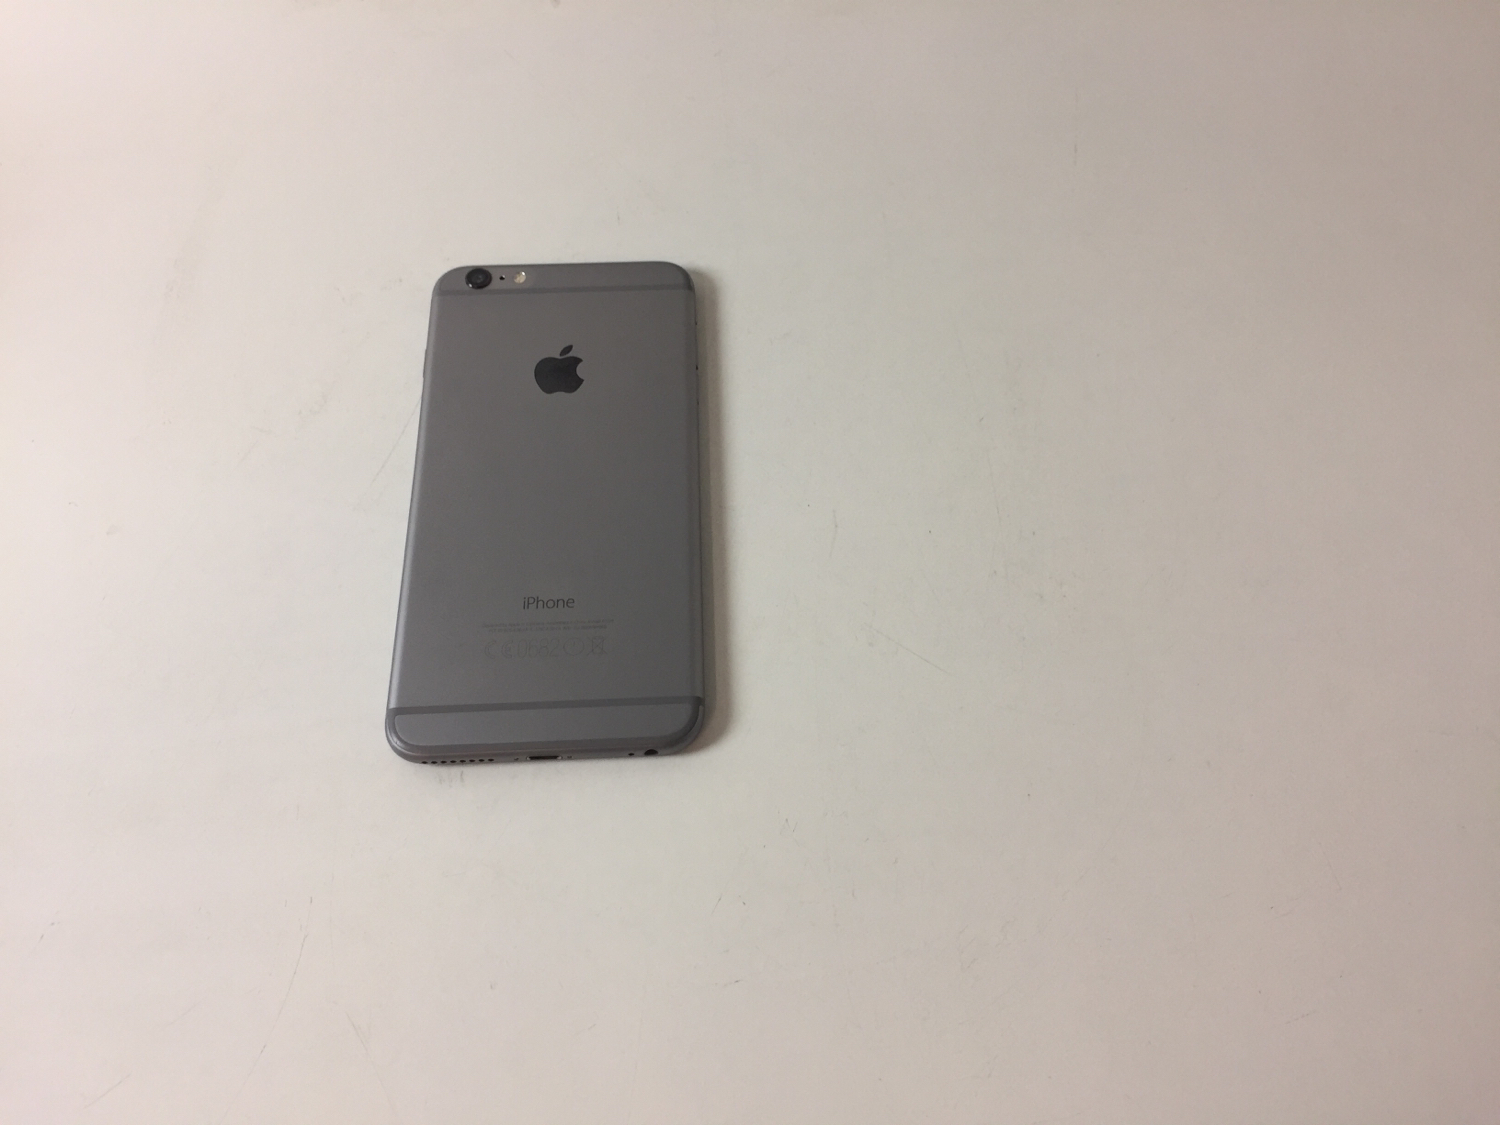 iPhone 6 Plus 16GB, 16GB, Space Gray, Afbeelding 2